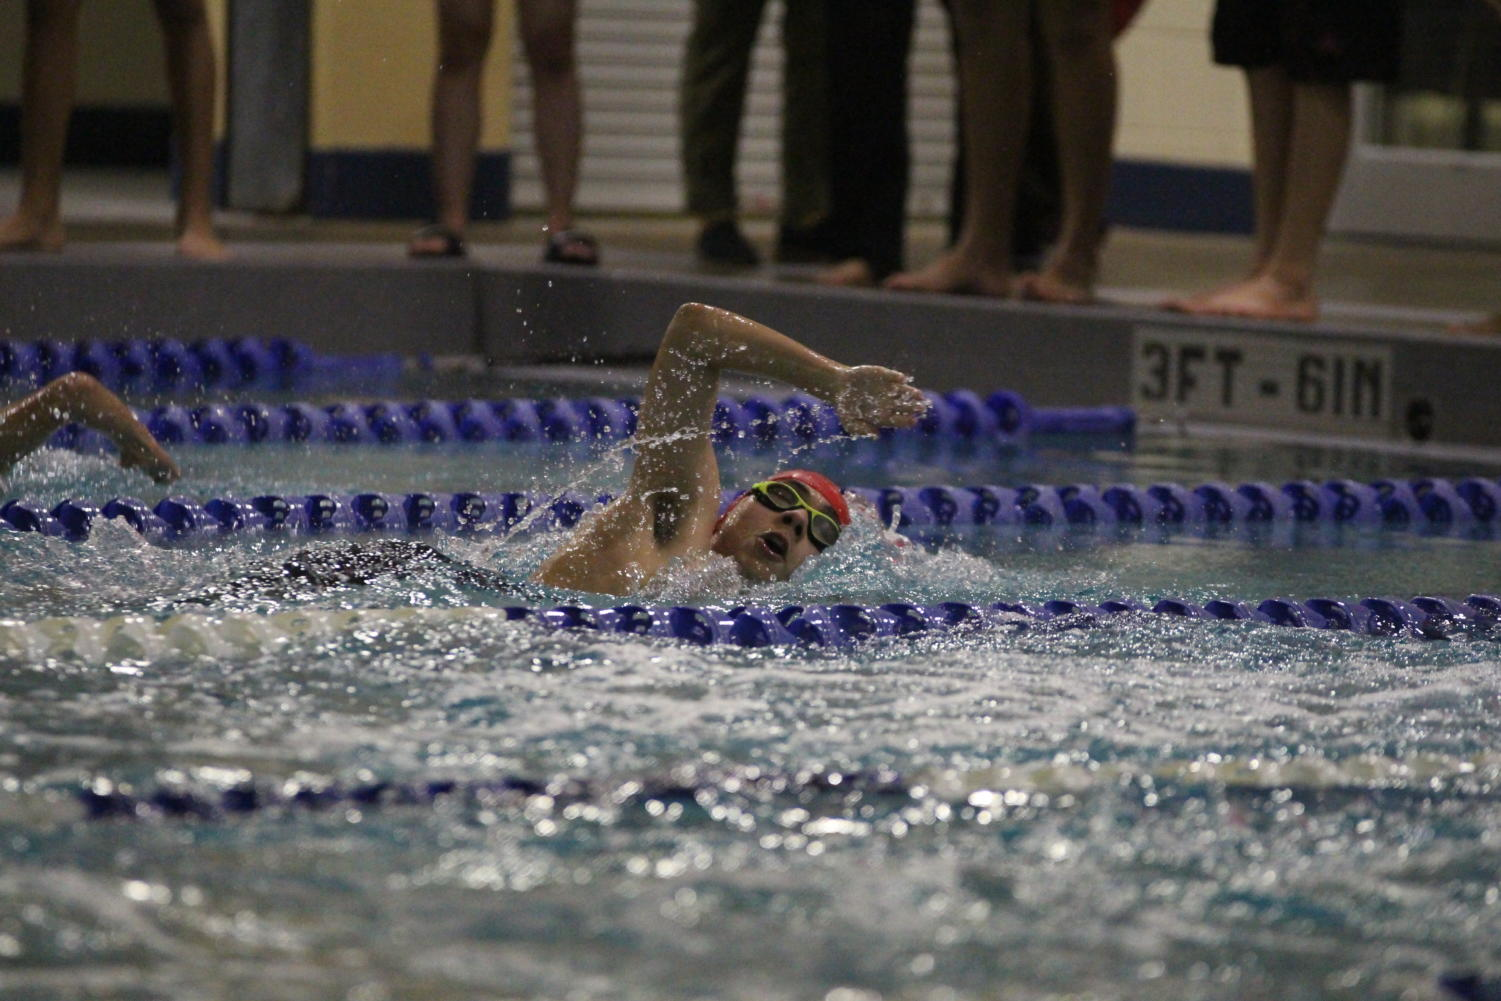 The swim and dive team has advanced 8 swimmers and 1 diver to state in Austin.